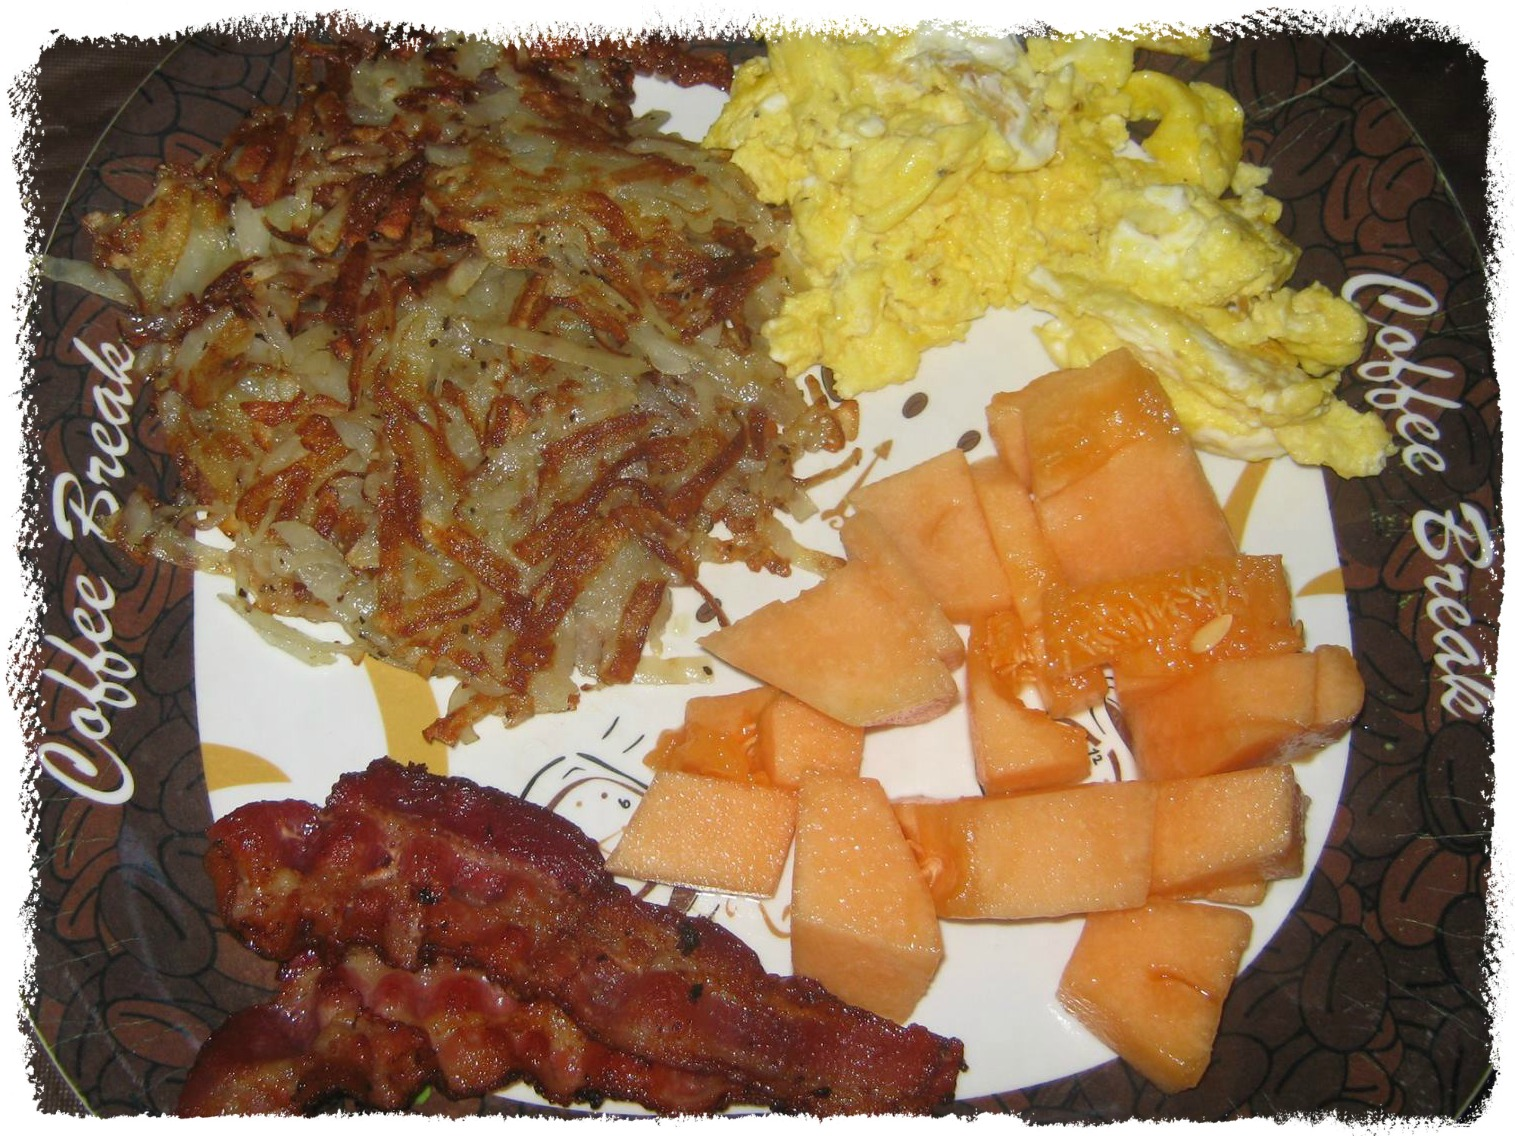 Canteloupe nitrate free bacon hash browns eggs